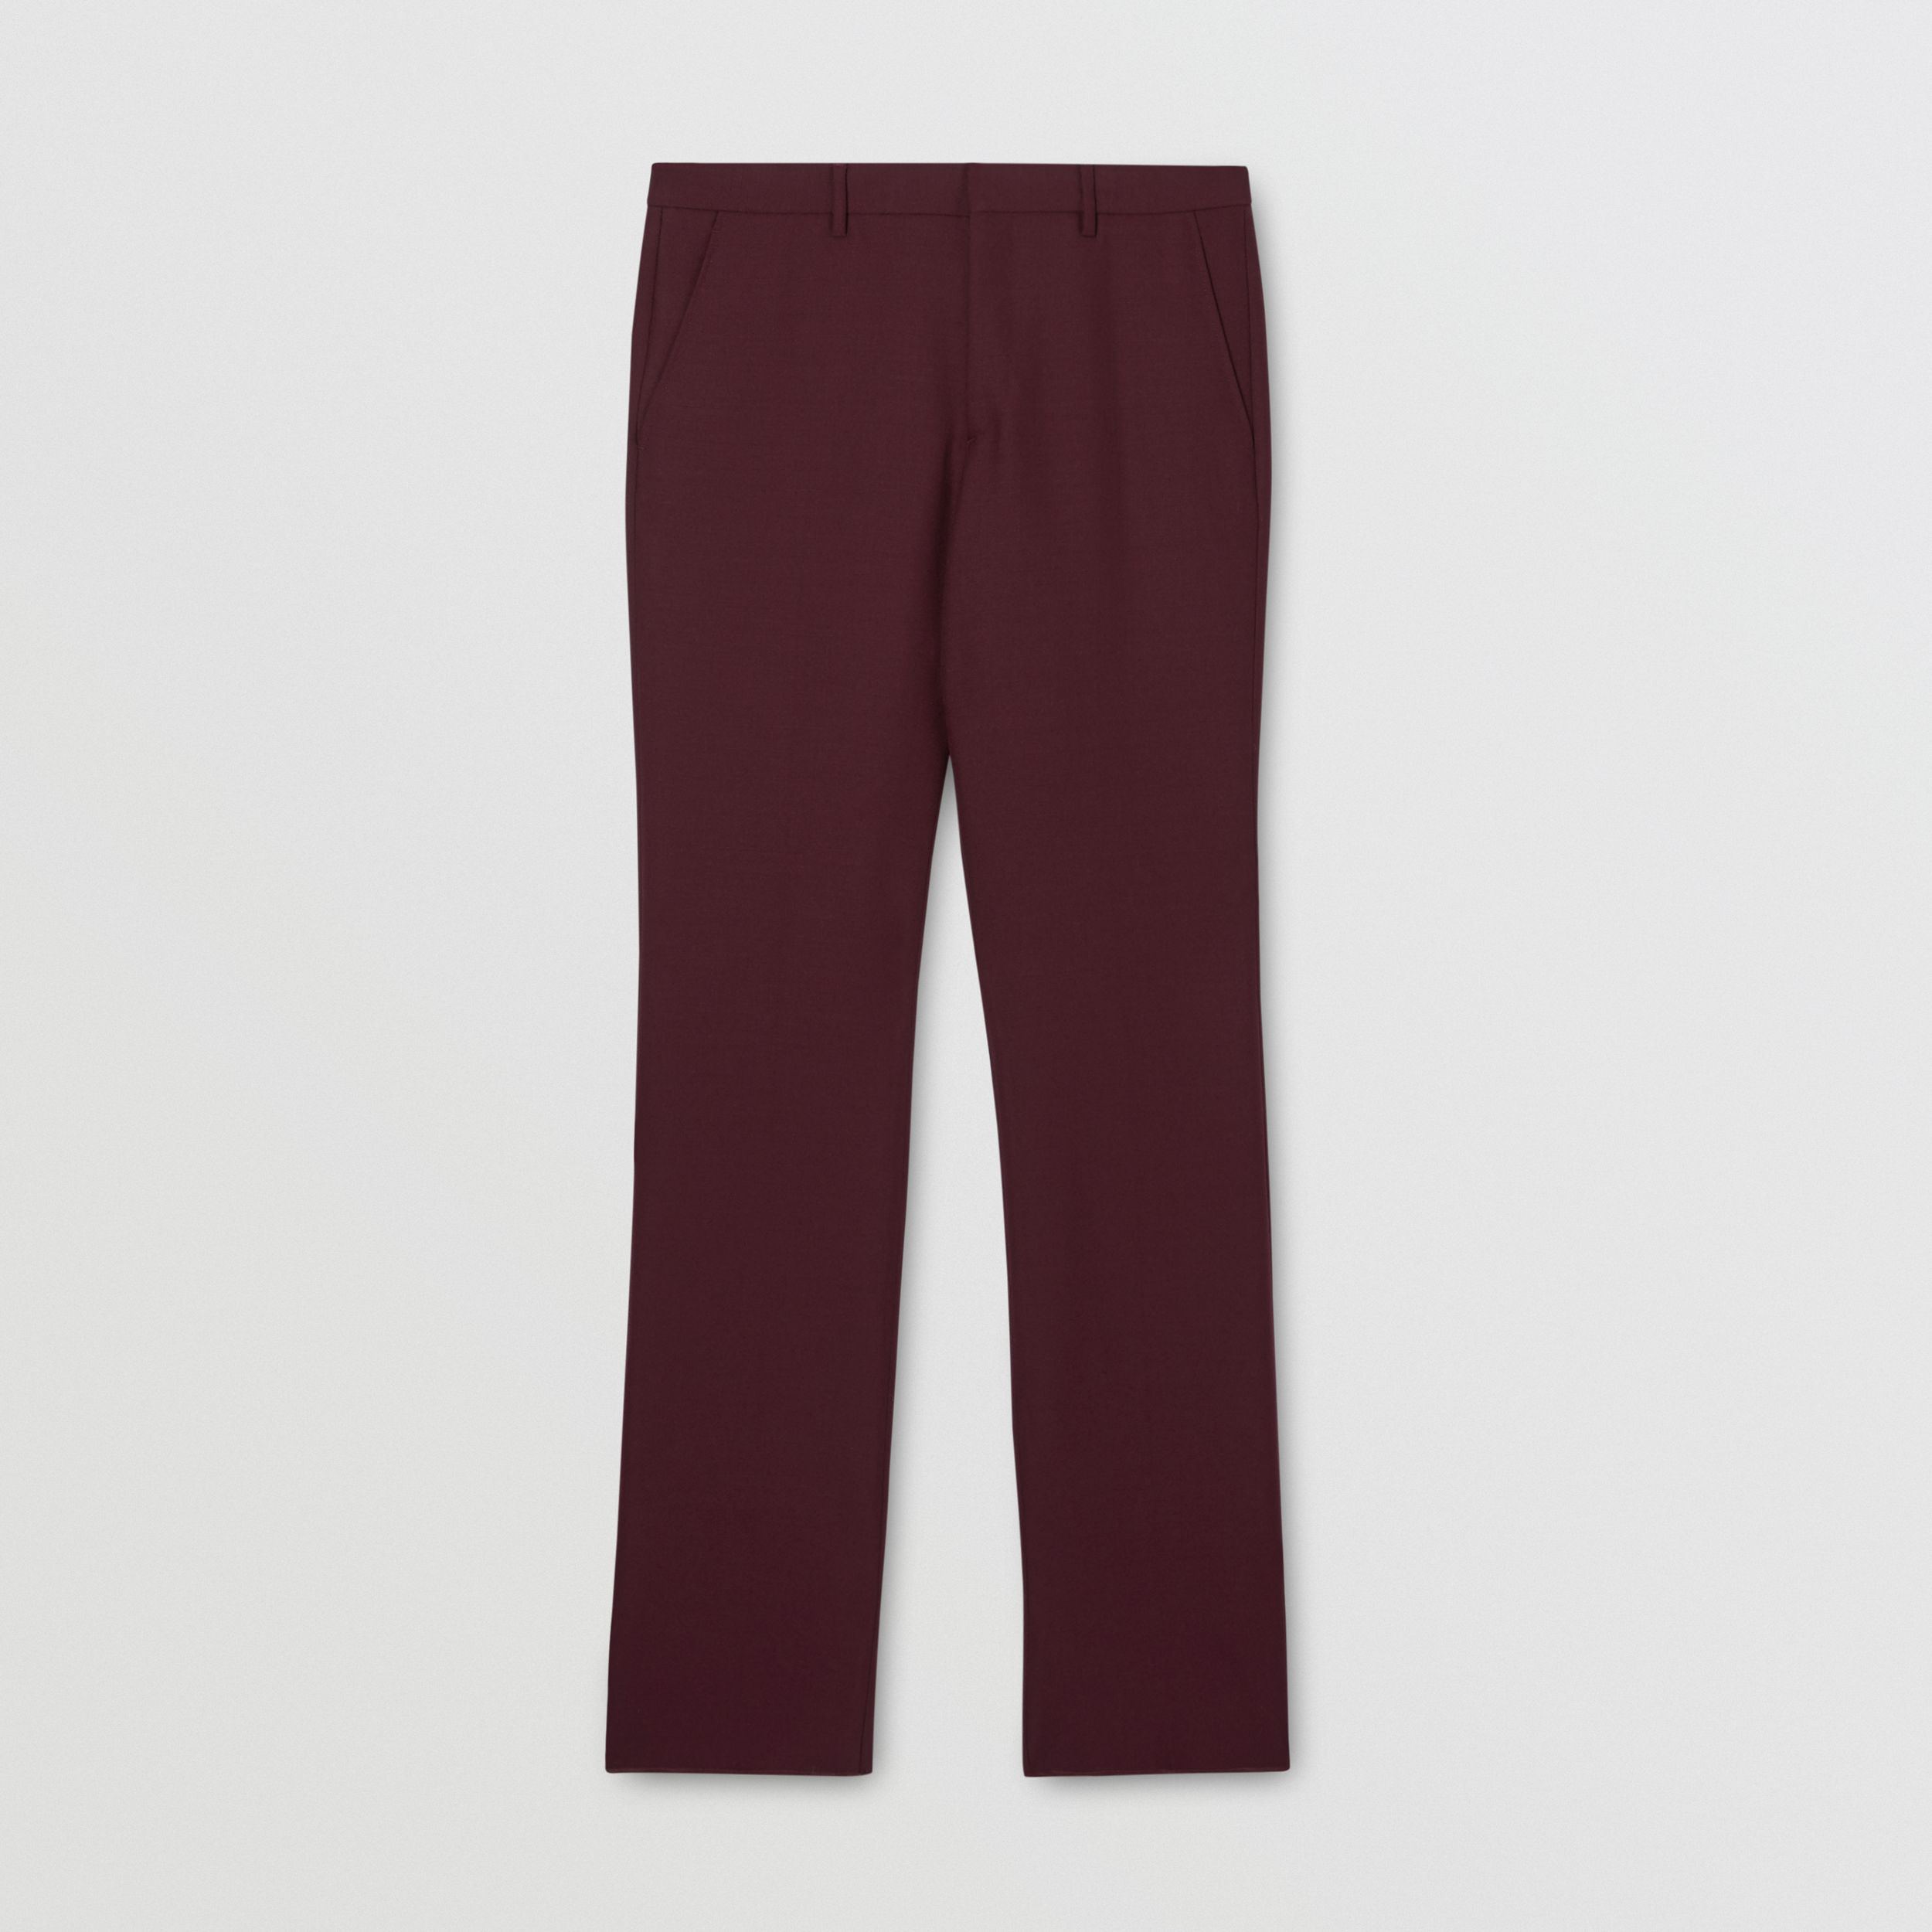 Classic Fit Wool Mohair Tailored Trousers in Deep Burgundy - Men | Burberry United Kingdom - 4